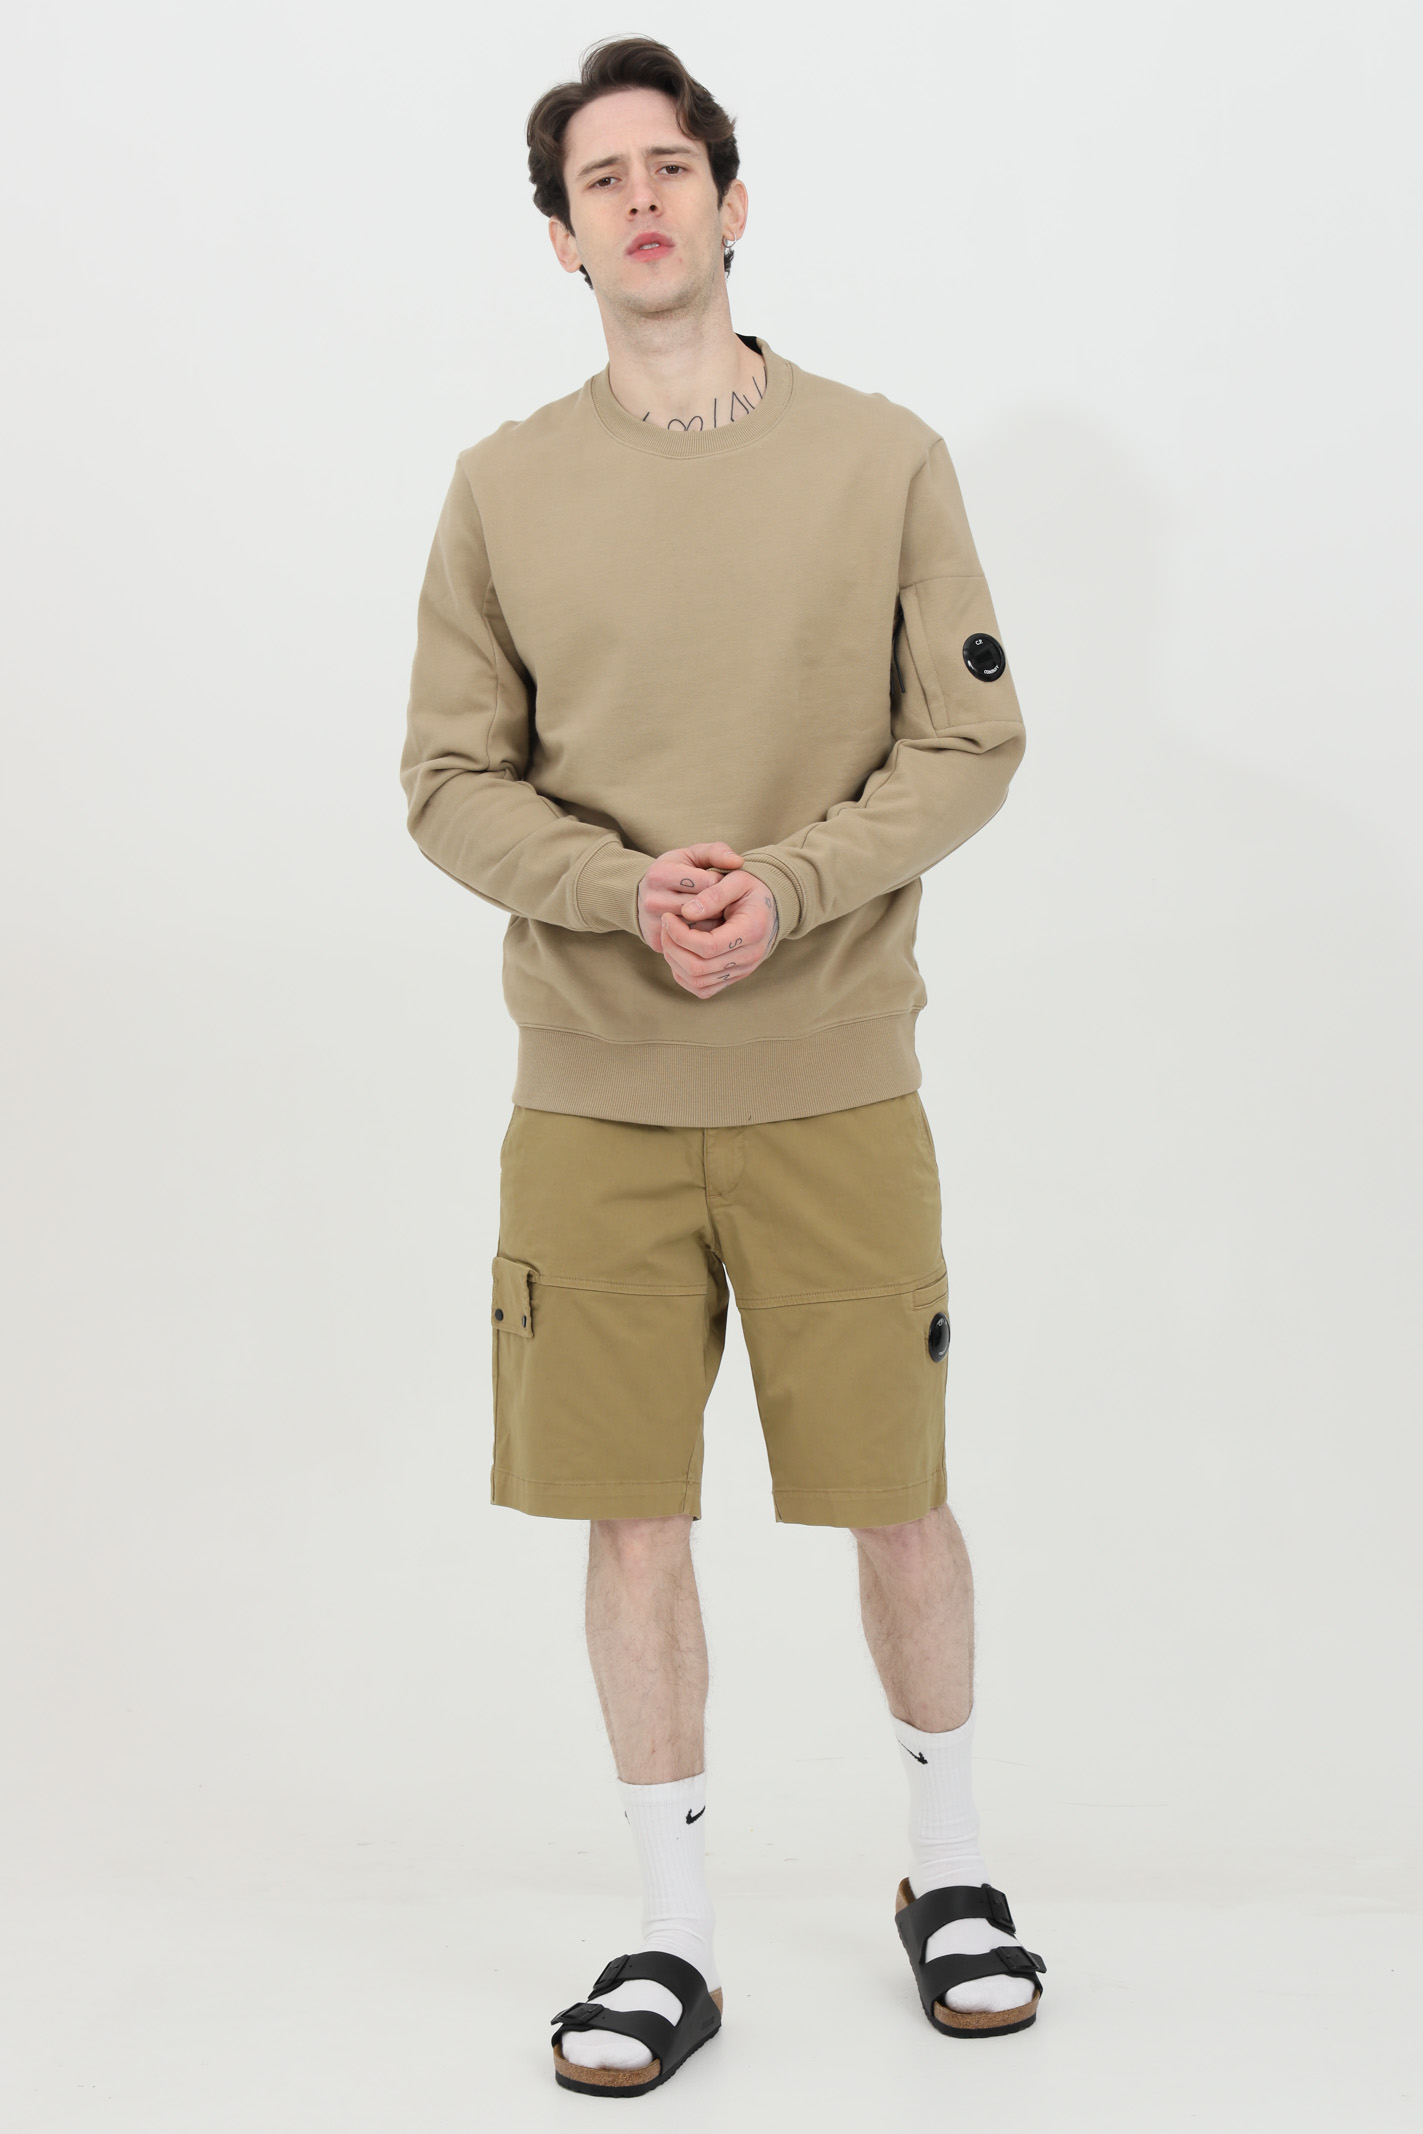 Beige sweatshirt, crew neck model, side pocket with zip and elastic bottom and cuffs with ribs. C.p. company C.P. COMPANY | Sweatshirt | 10CMSS045A-005086W329